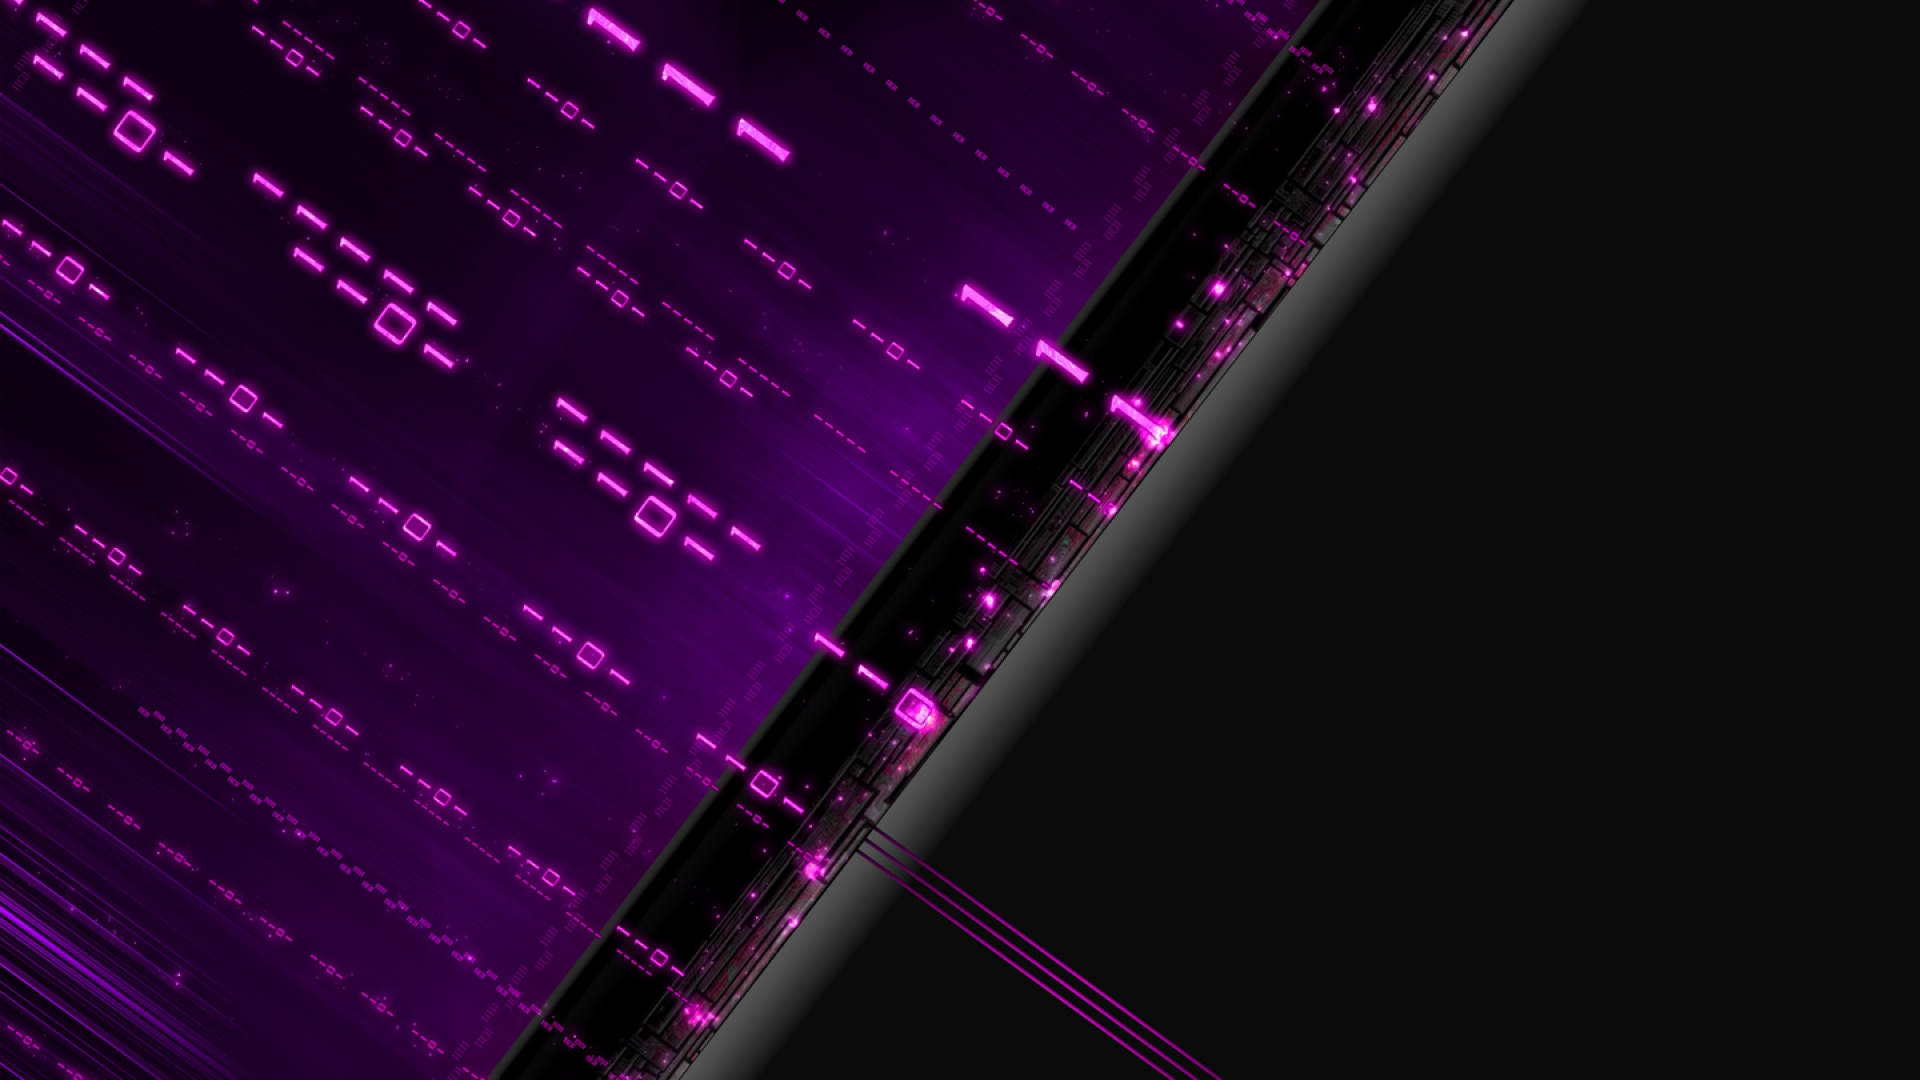 Binary wallpaper